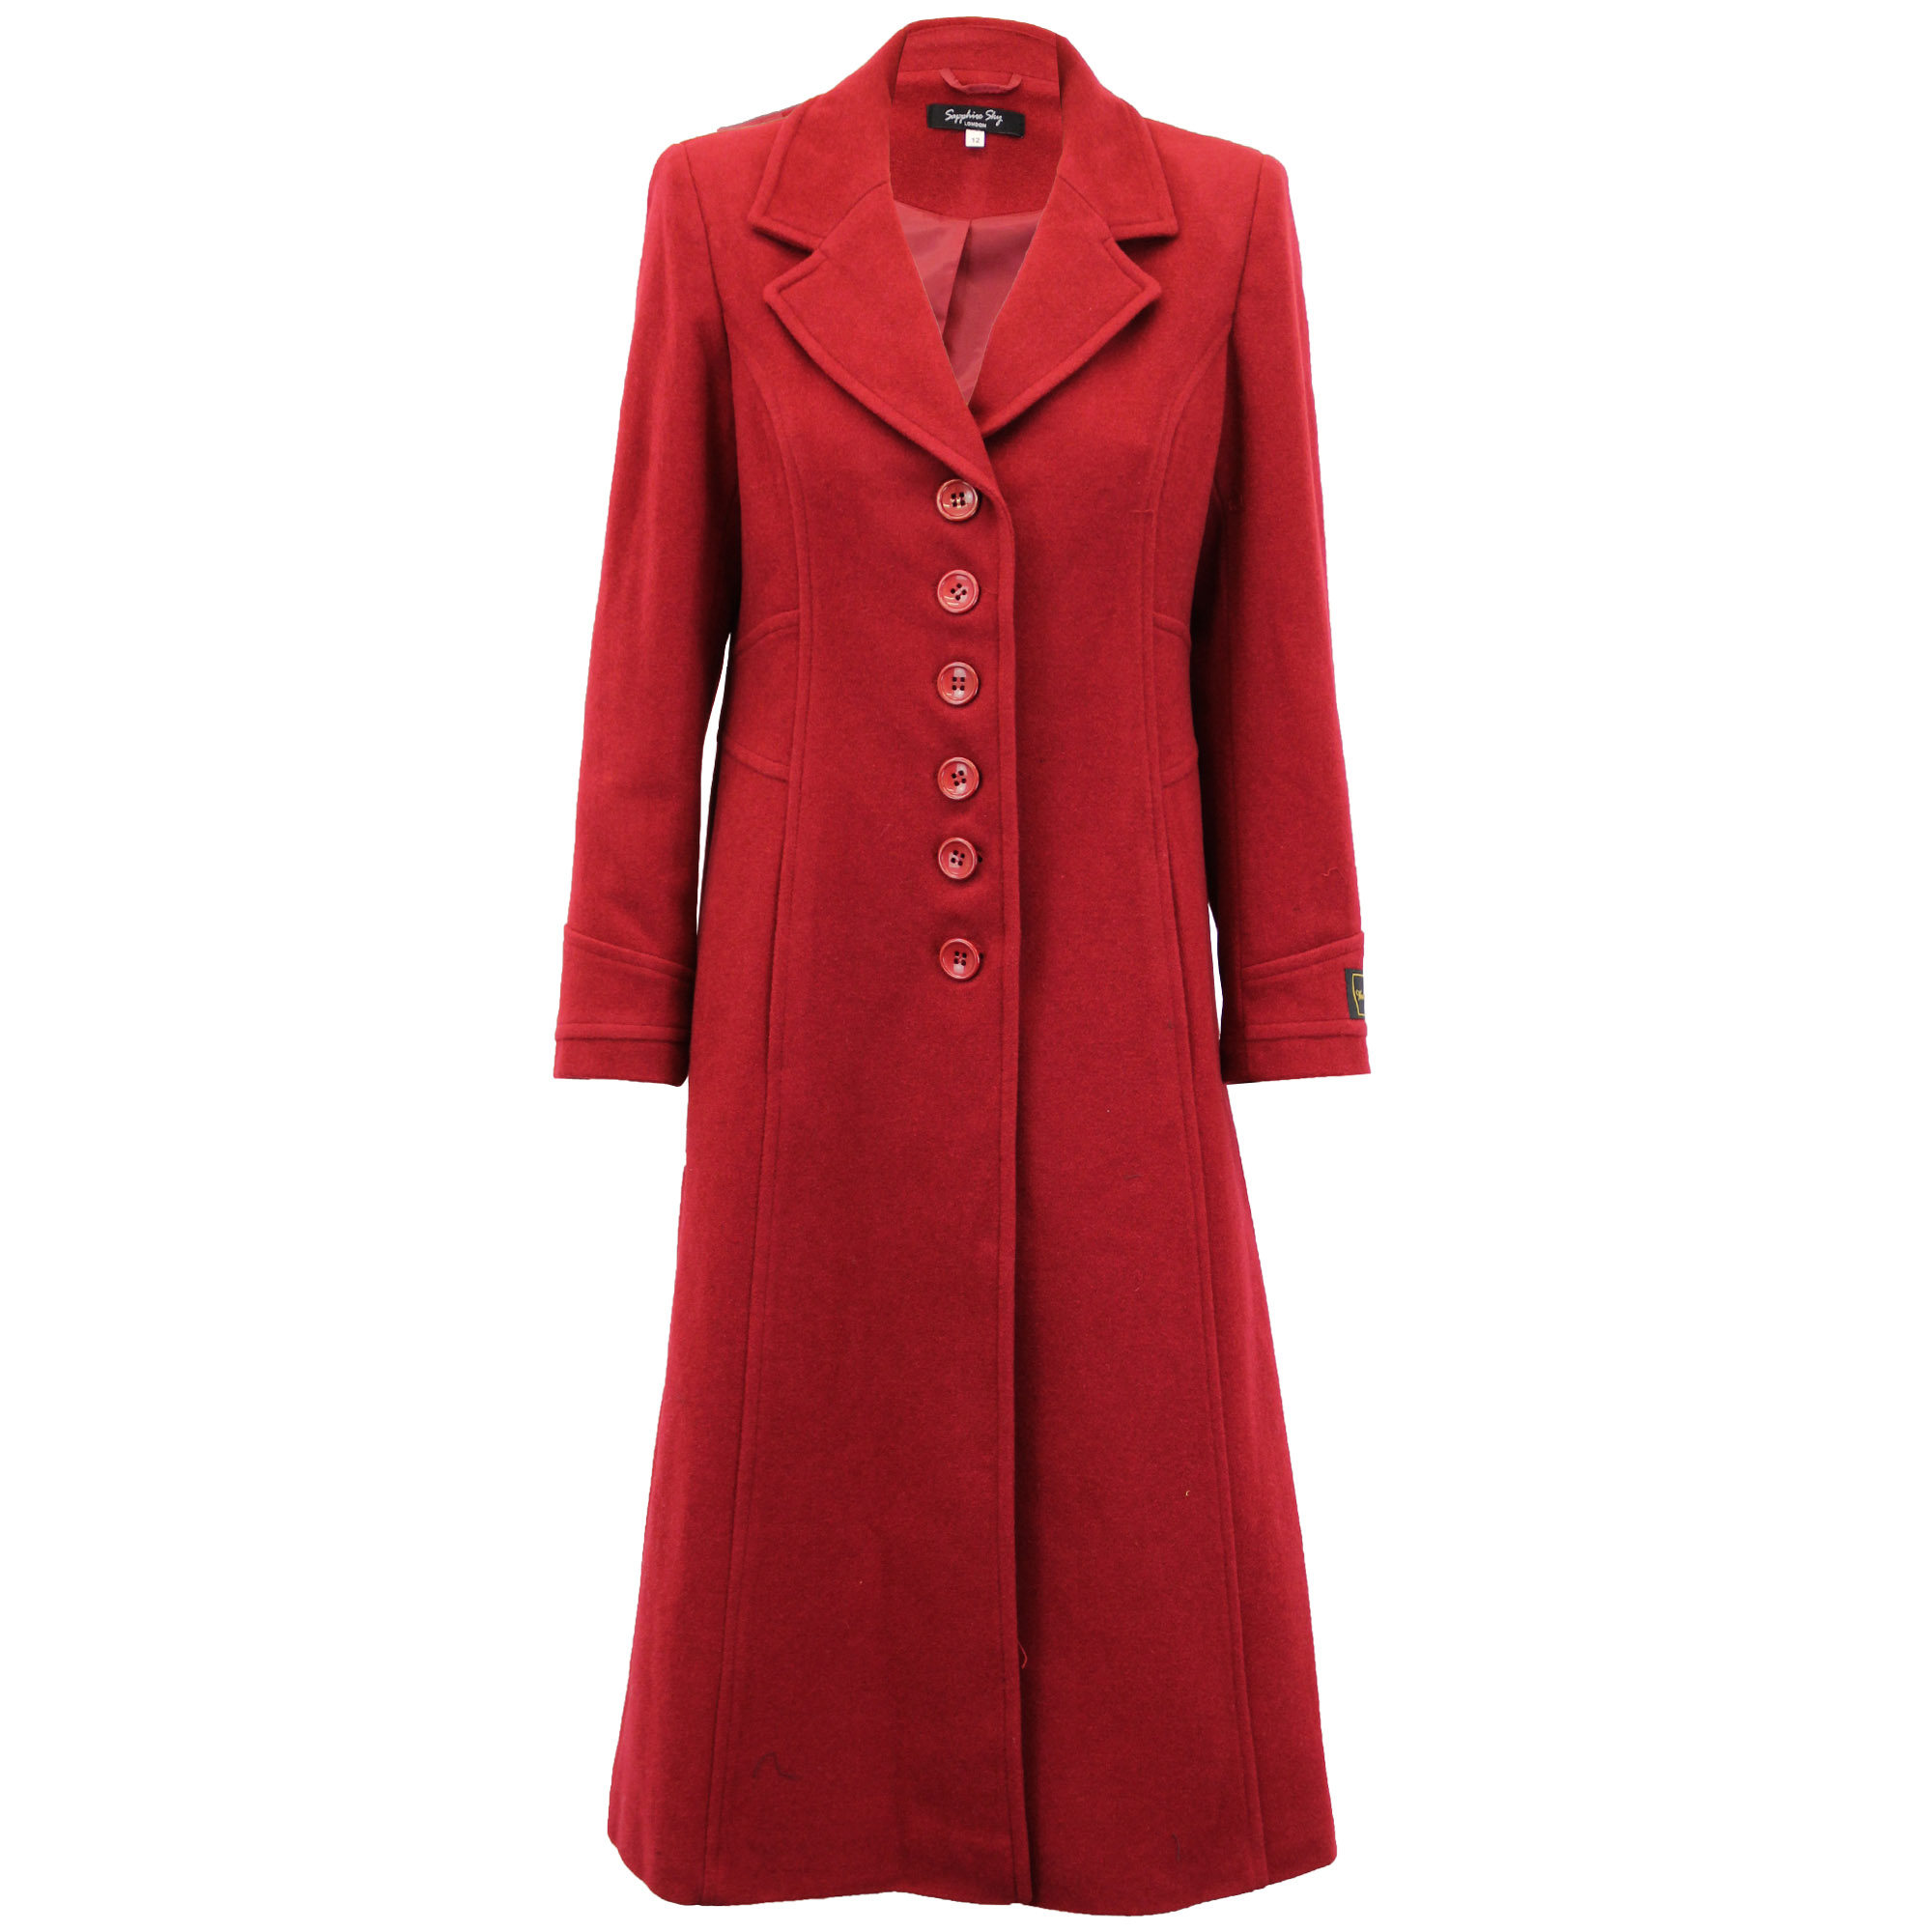 Wool coat women sale